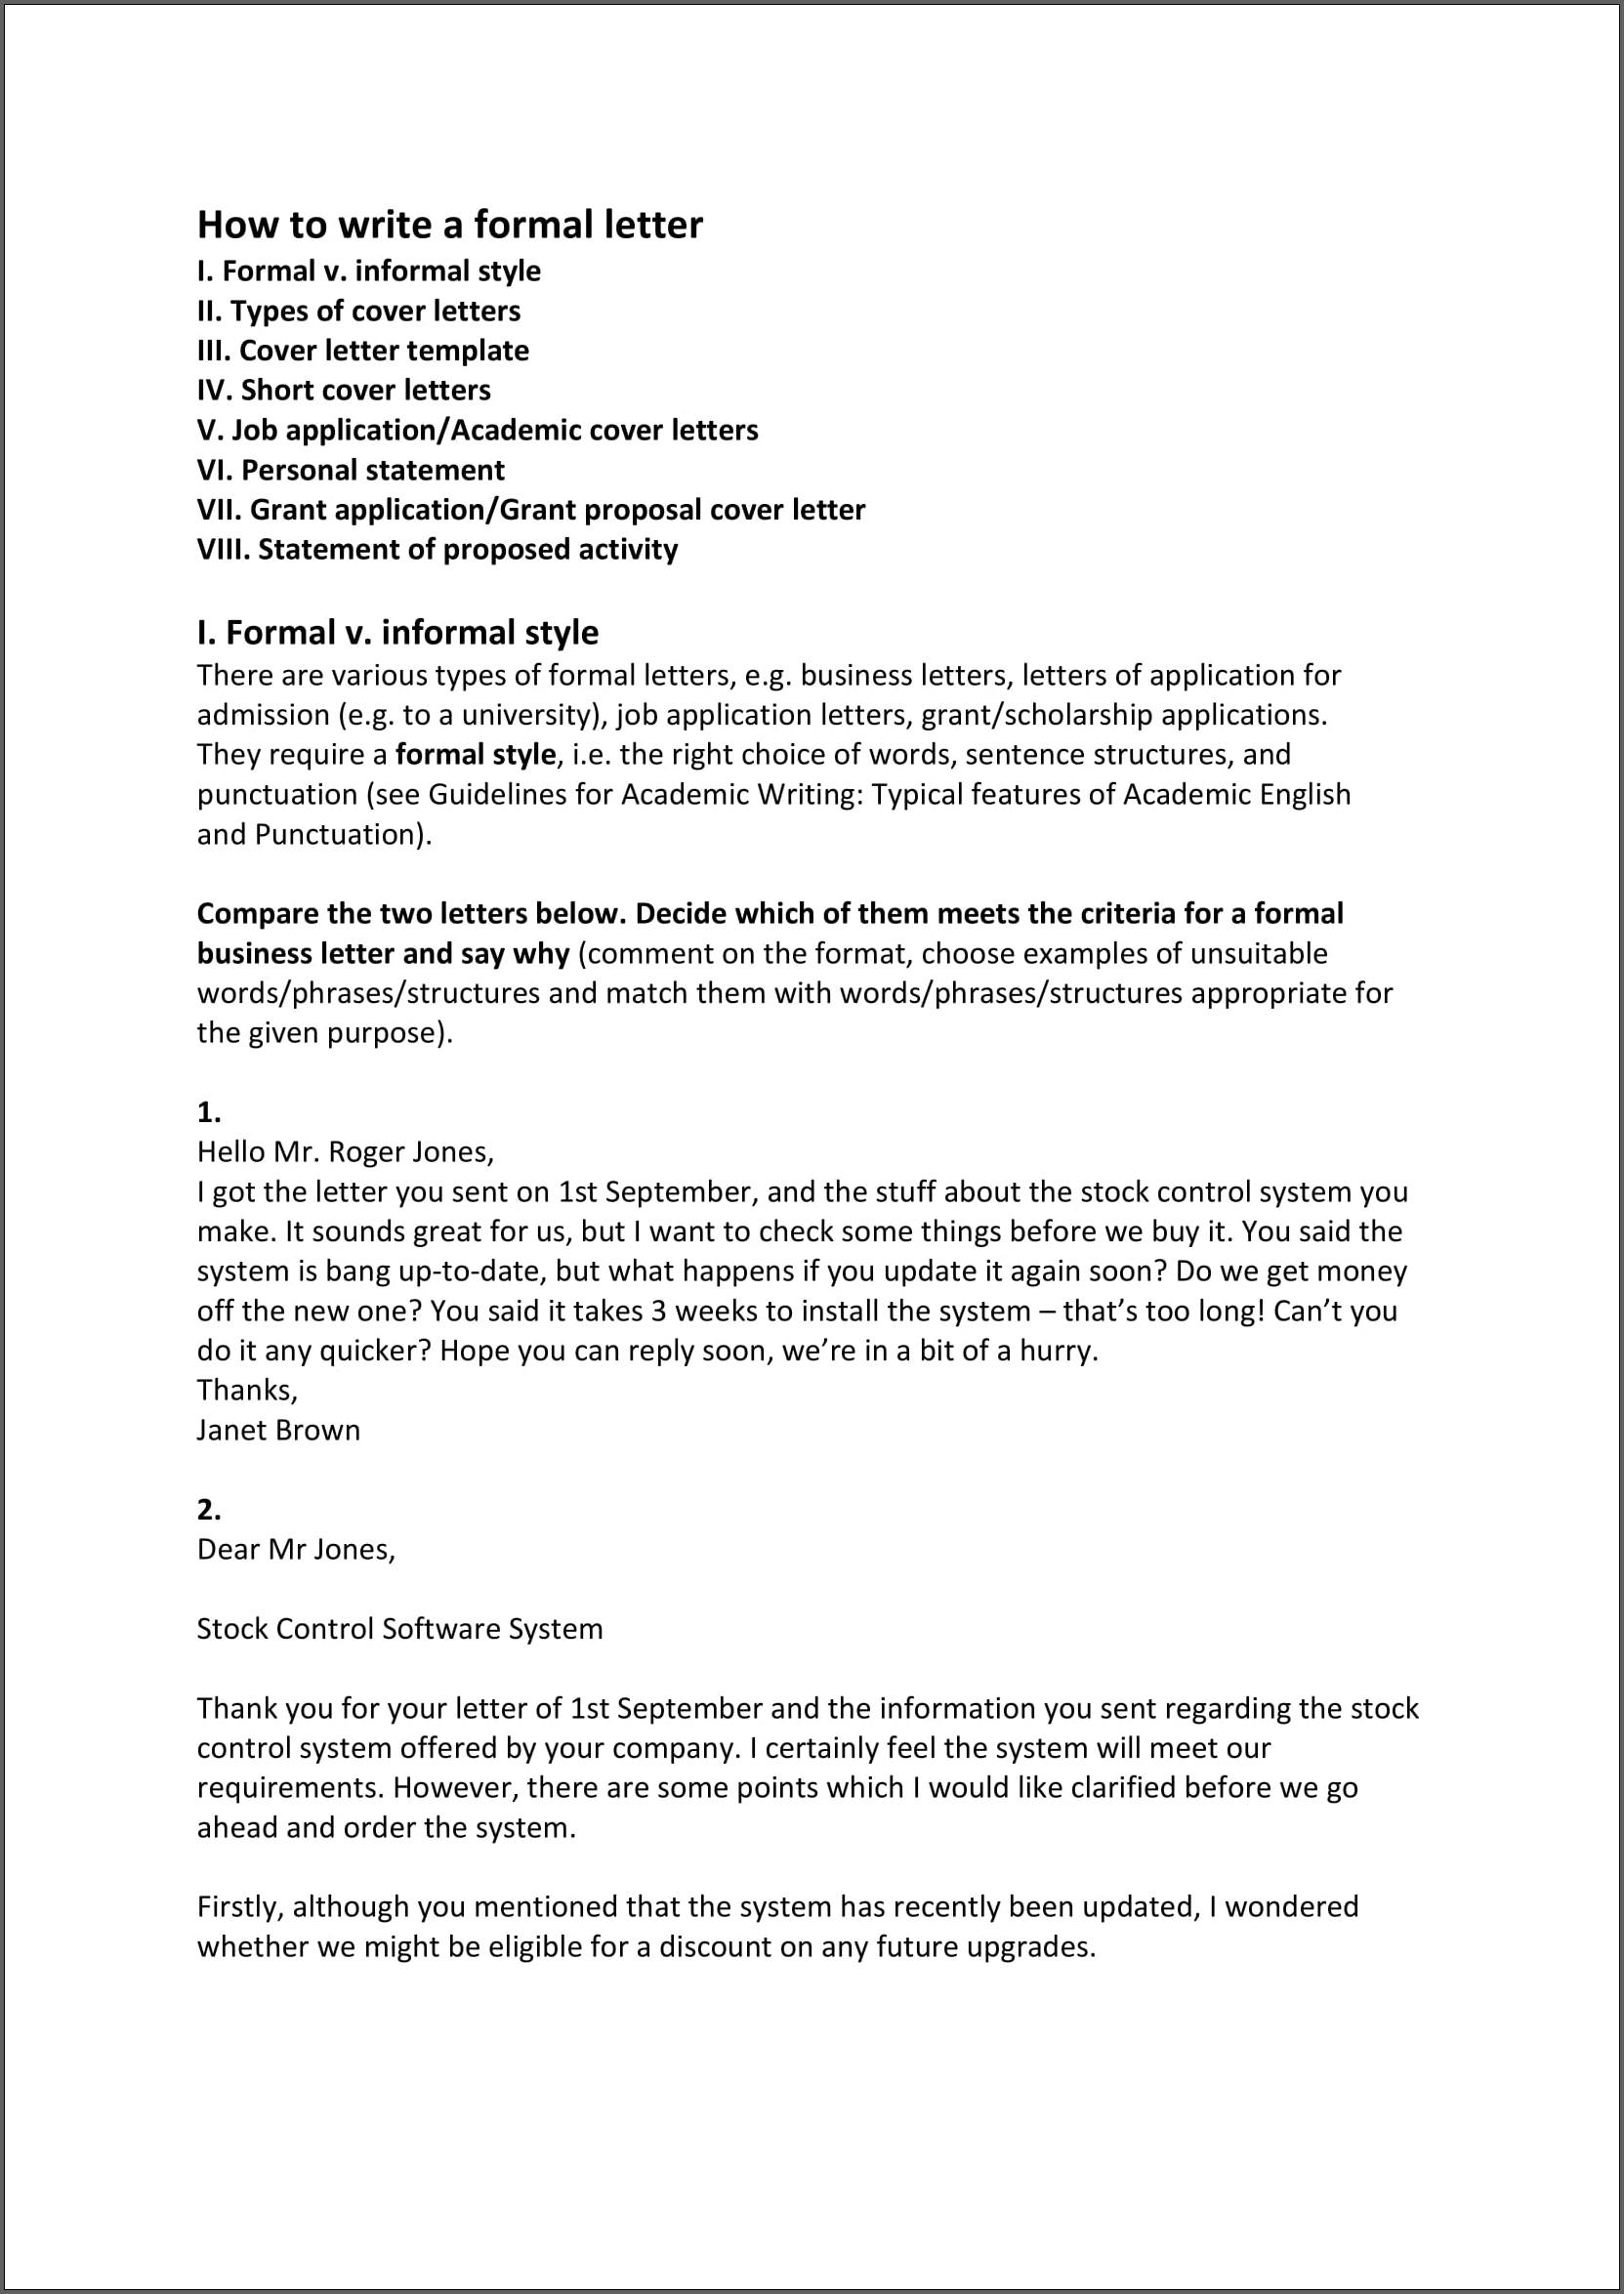 Example of Formal Business Letter Template